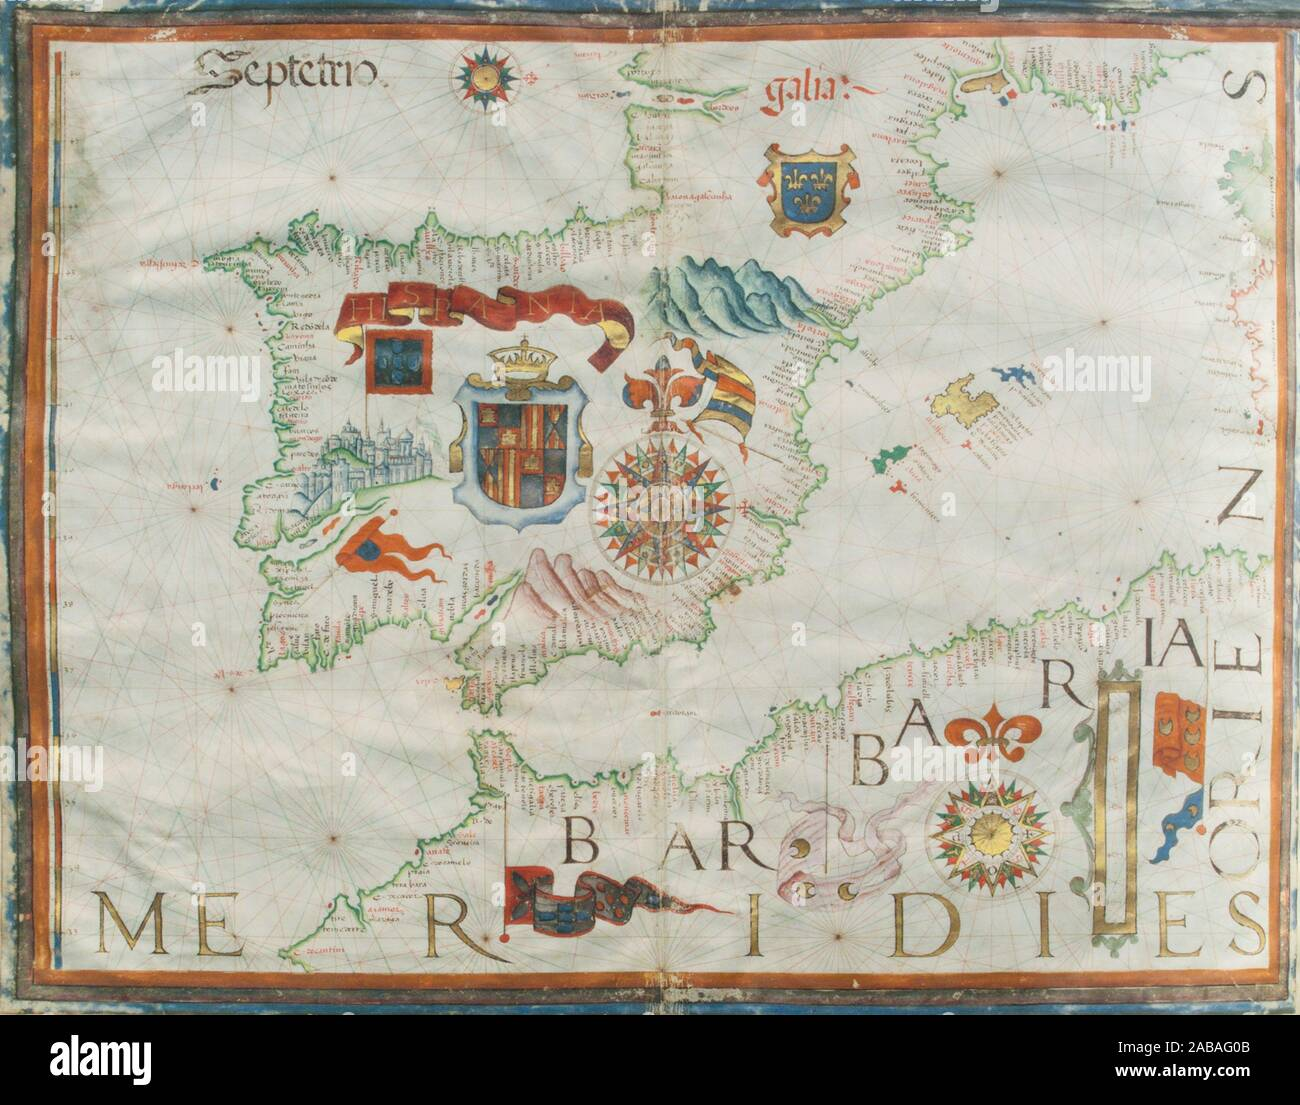 1561 Portulan map of Iberian Peninsula painted by Diego Homen. Original at Spanish Naval Museum. Stock Photo